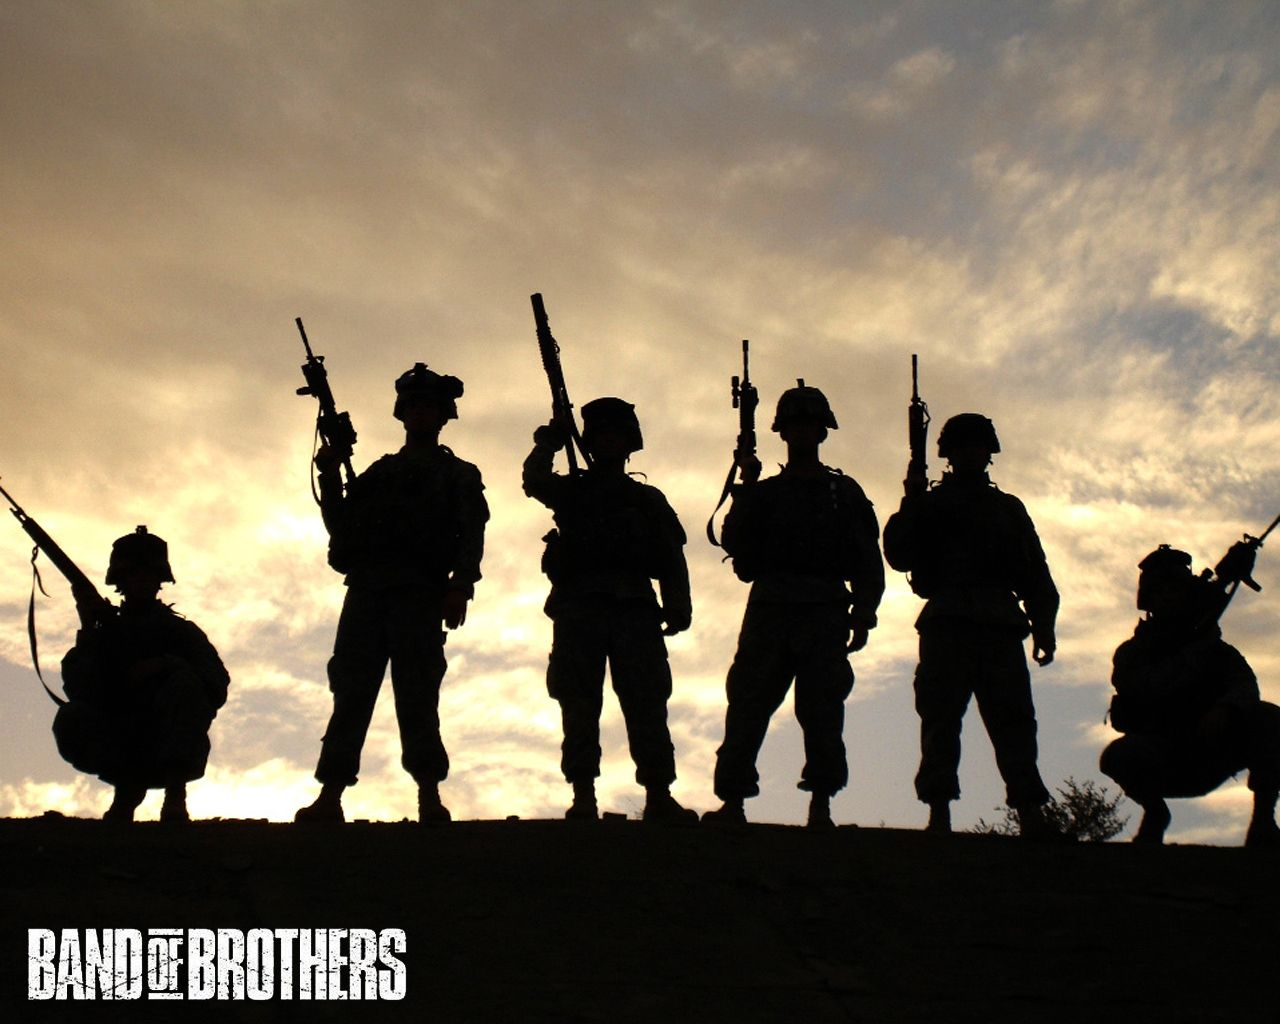 Band of brothers tv miniseries desktop hd wallpaper tv series band of brothers silhouettes of men